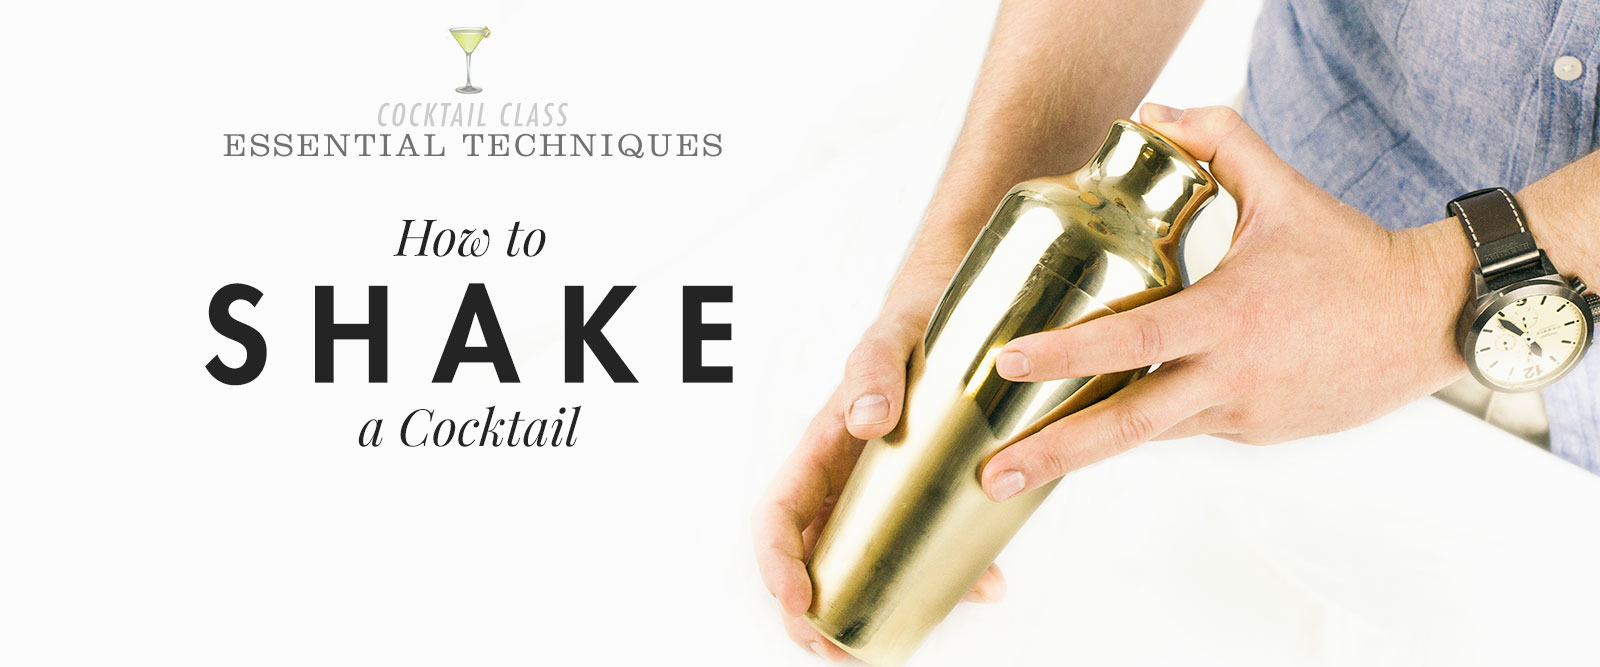 How to Shake a Cocktail – Essential Techniques